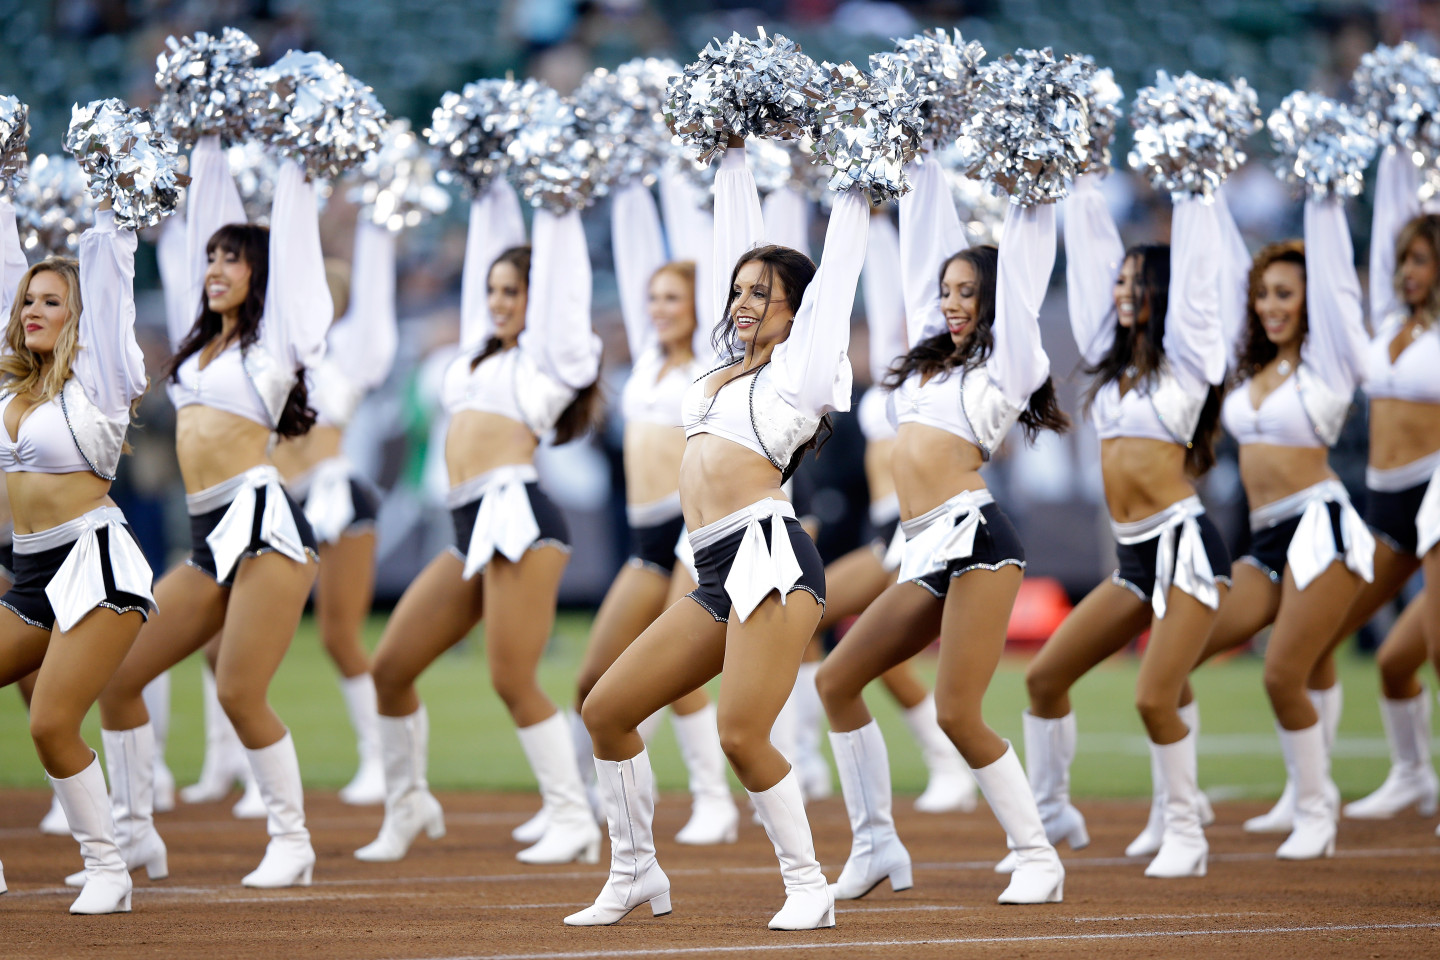 Oakland Raiders Agree to Pay $1.25 Million to Raiderettes